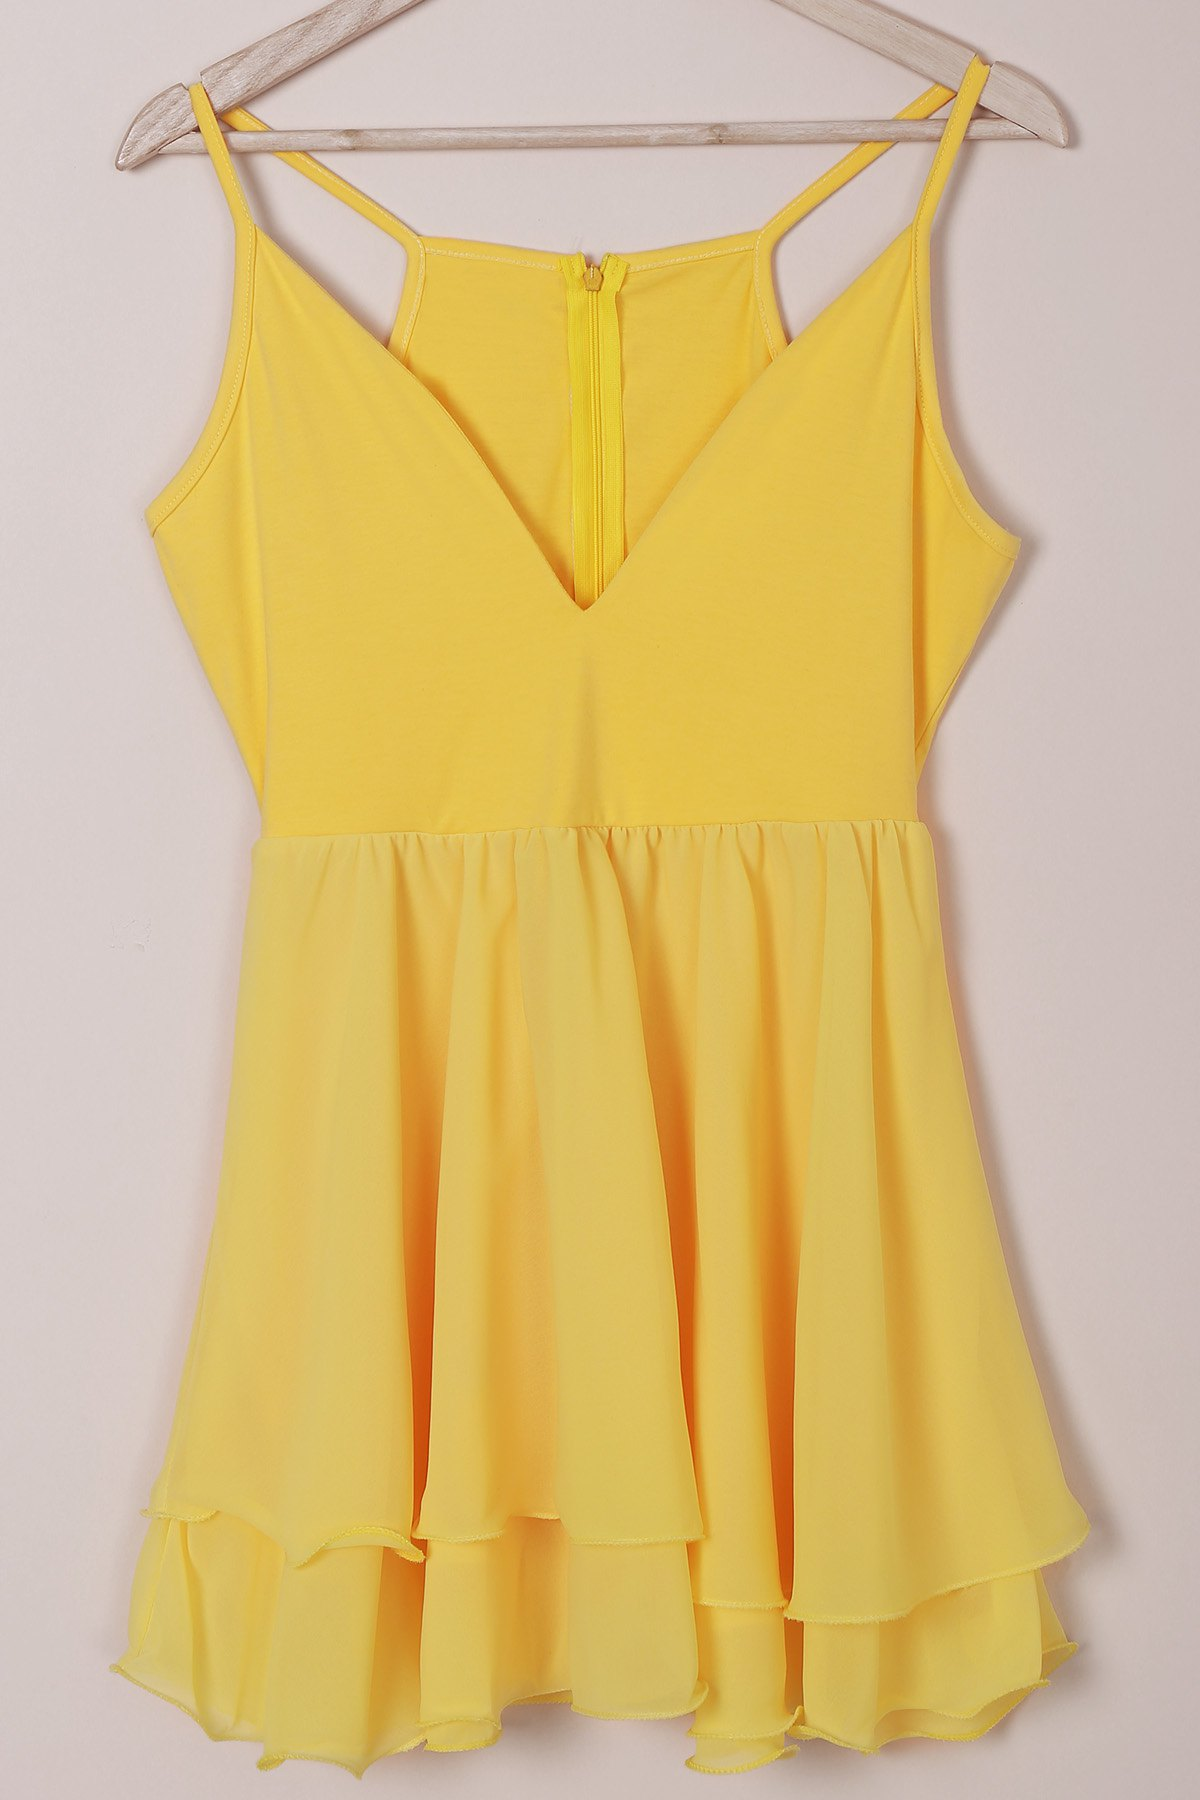 Sexy Women's Plunging Neck Spaghetti Strap Layered Flounced Dress - YELLOW M